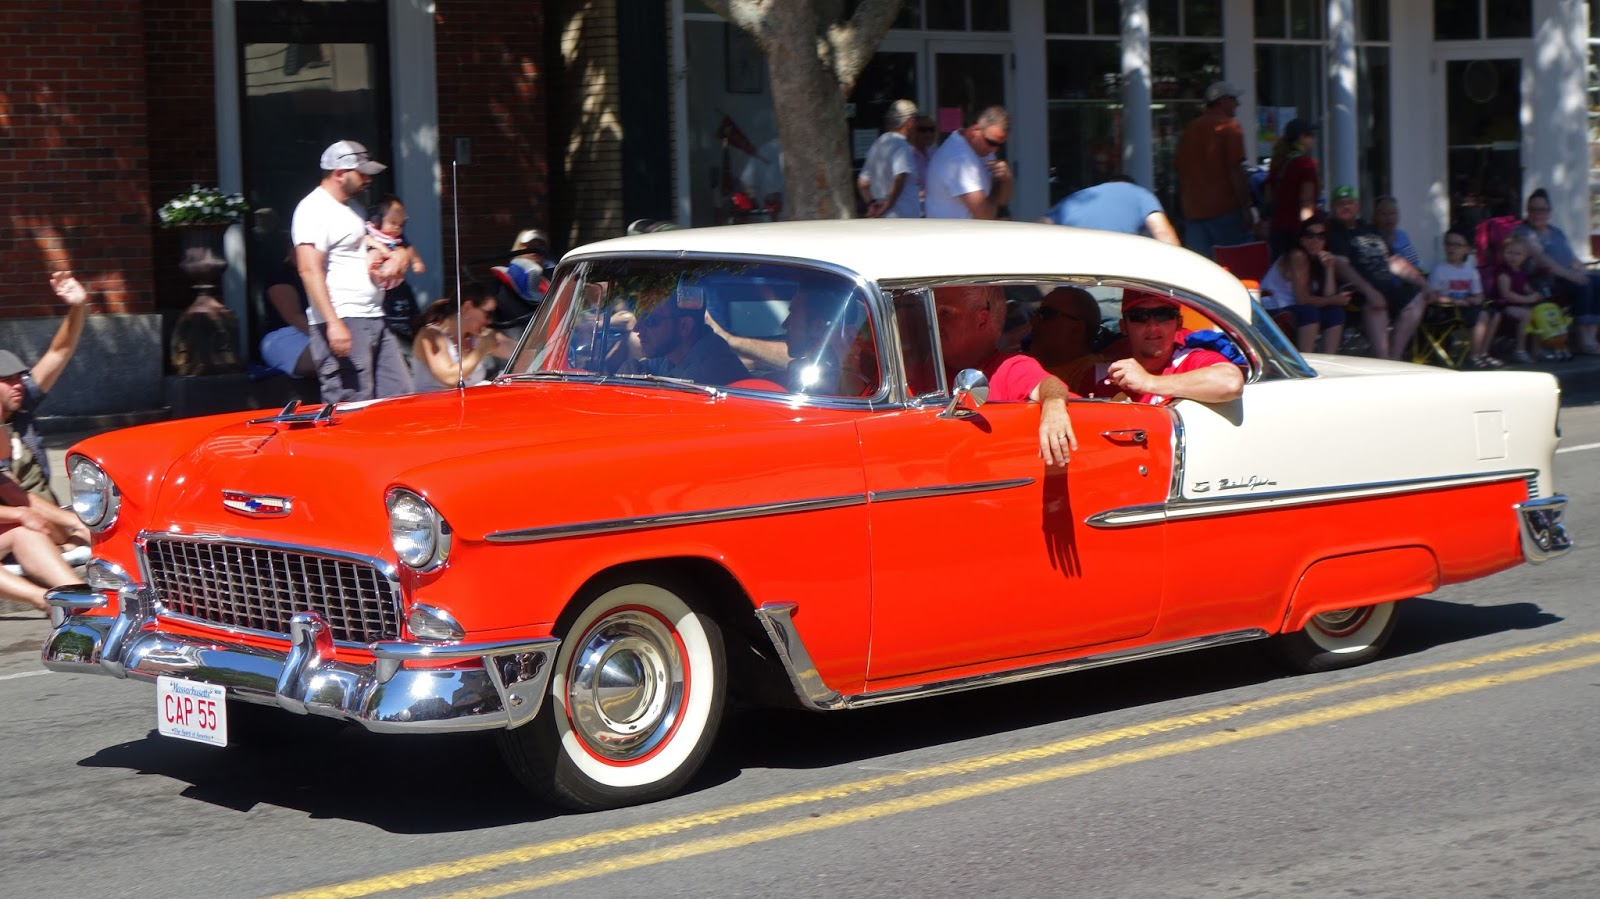 Hometown Classic Cars Chadds Ford Pa Web Page